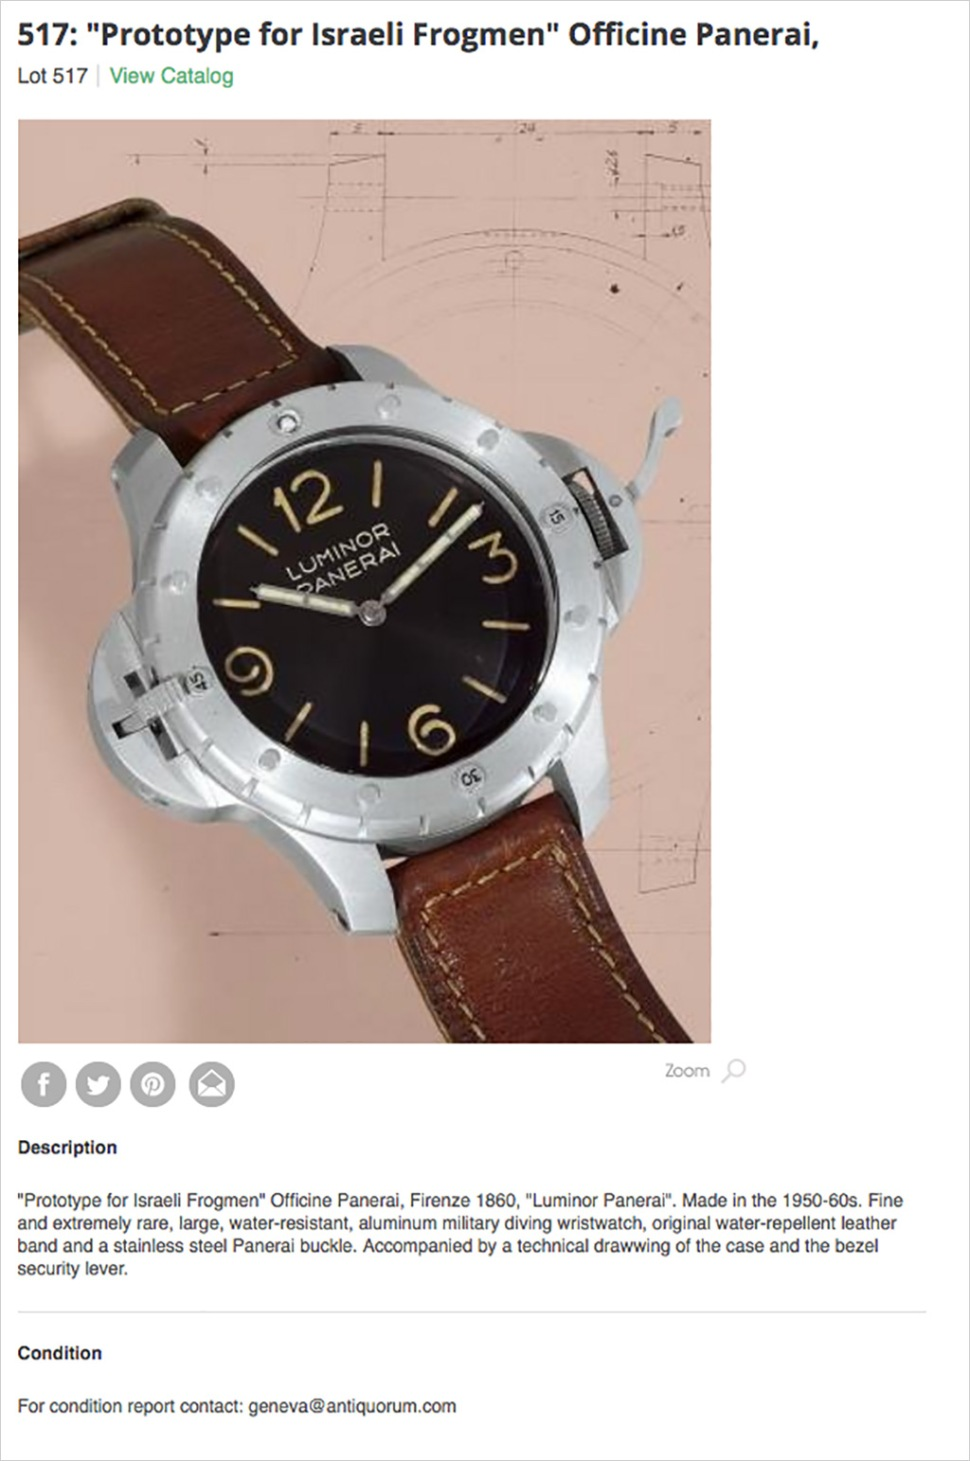 180823-panerai-israeliano-natural-antiquorum-2007-rinaldi-fake-listing